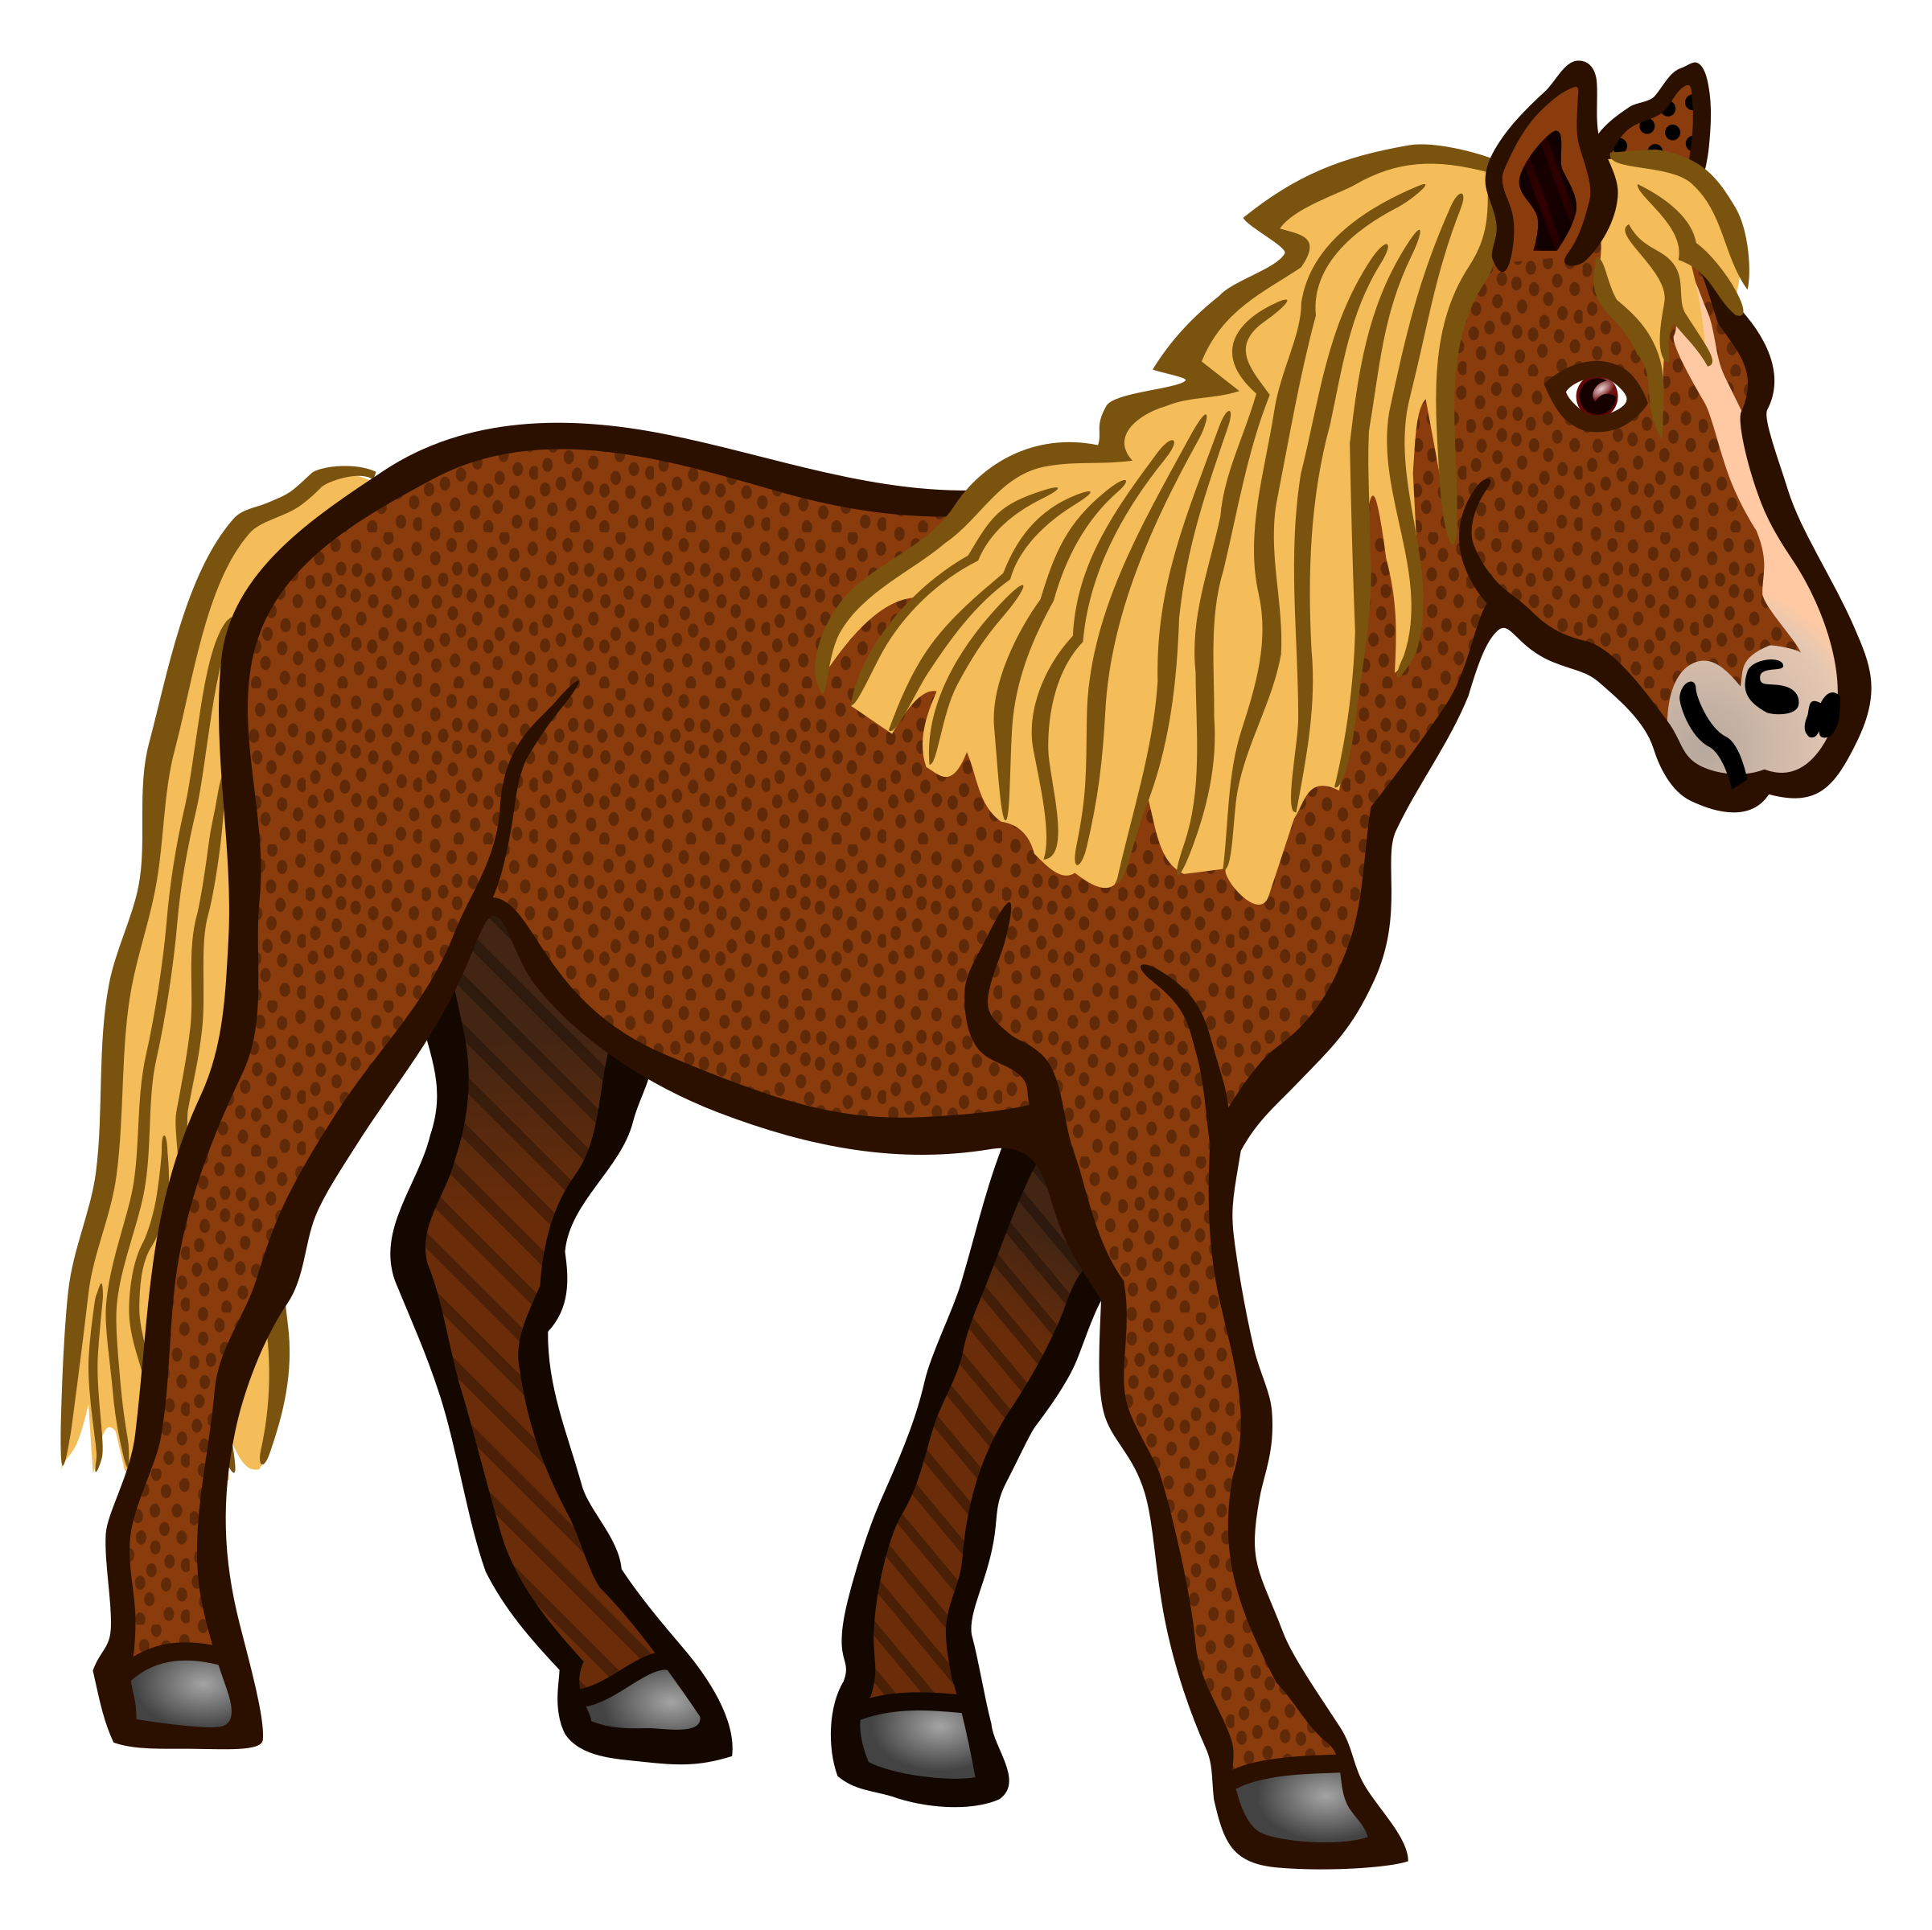 Horse png clipart. Coloured icons free and